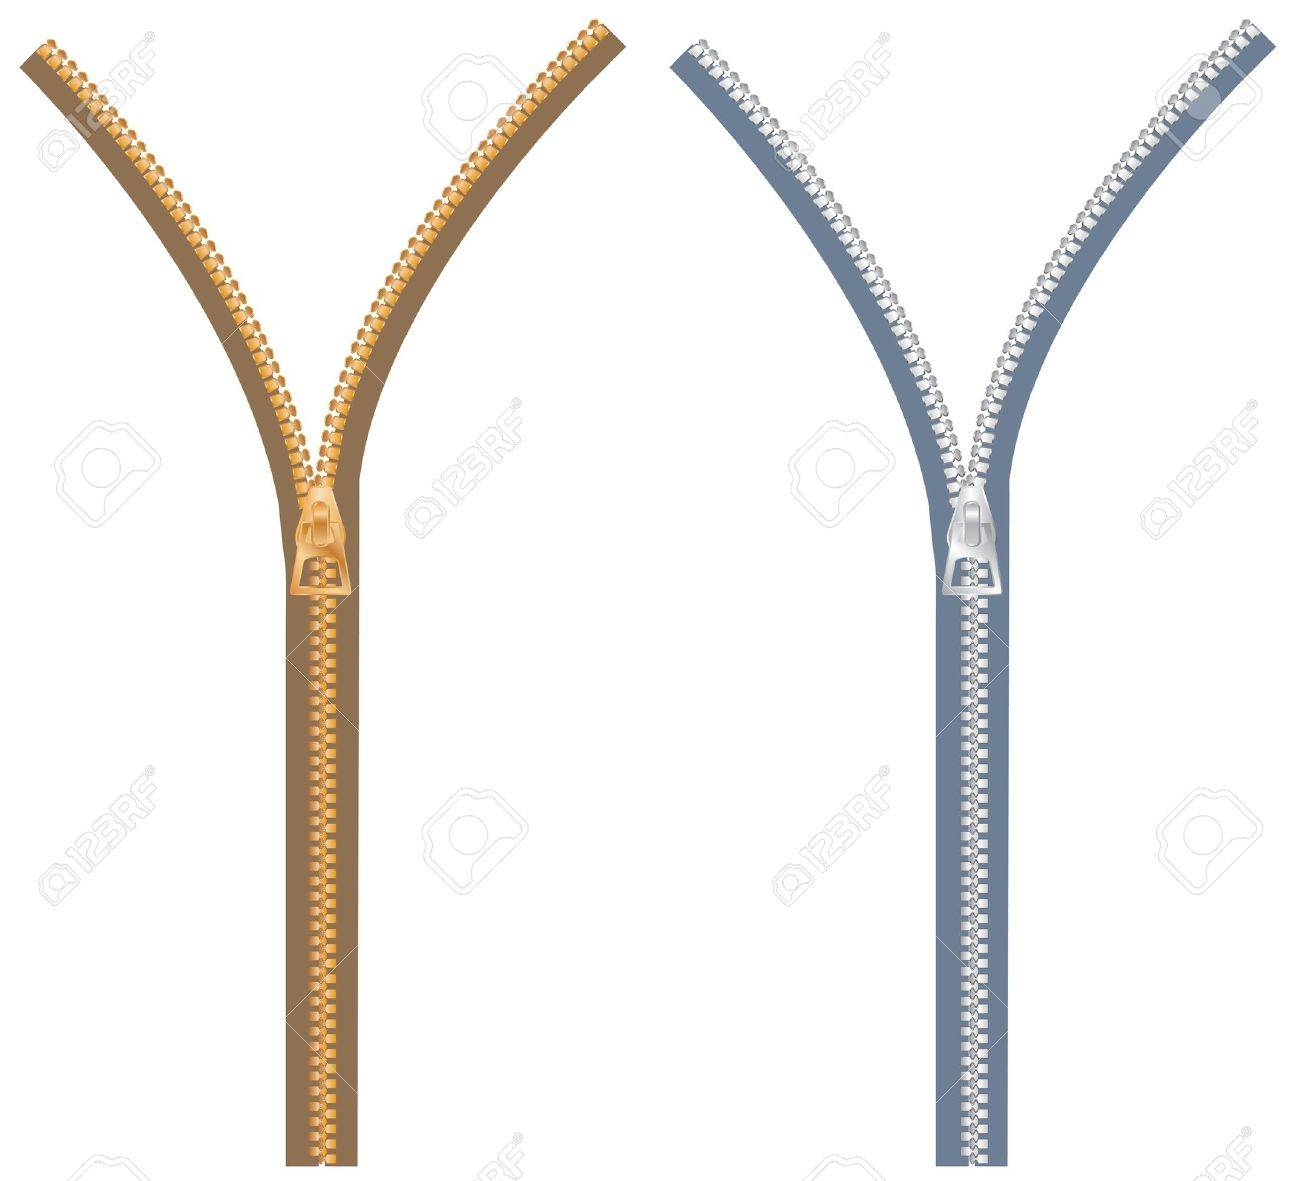 zipper in two color variations Stock Vector - 7196529